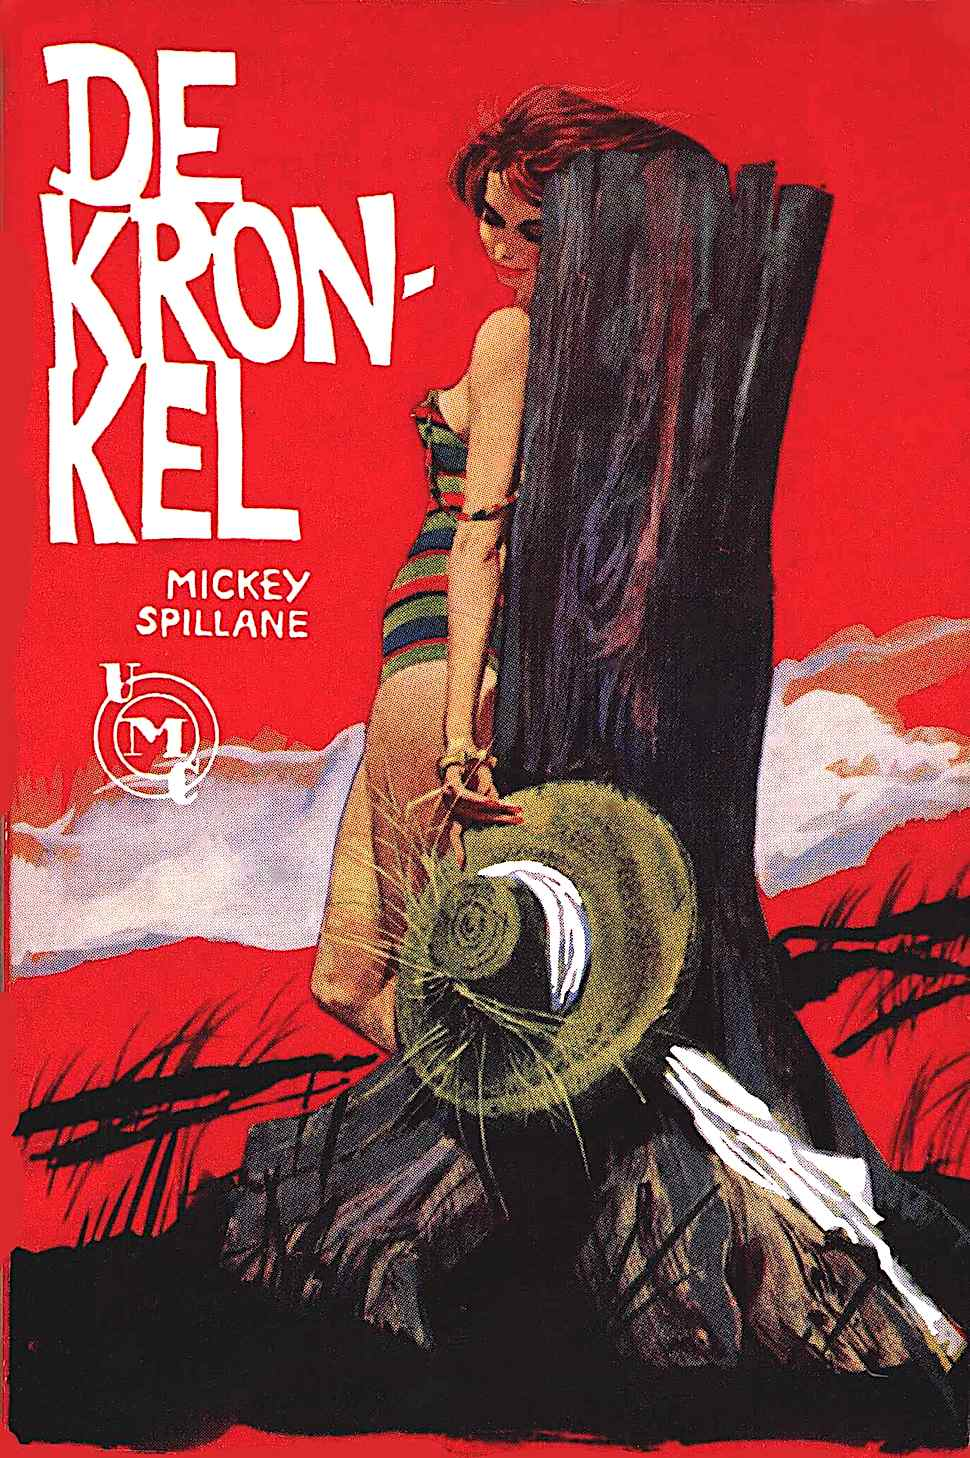 a Robert McGinnis 1966 book cover illustration for Mickey Spillane's De Kronkel, a sexy beach woman with red sky